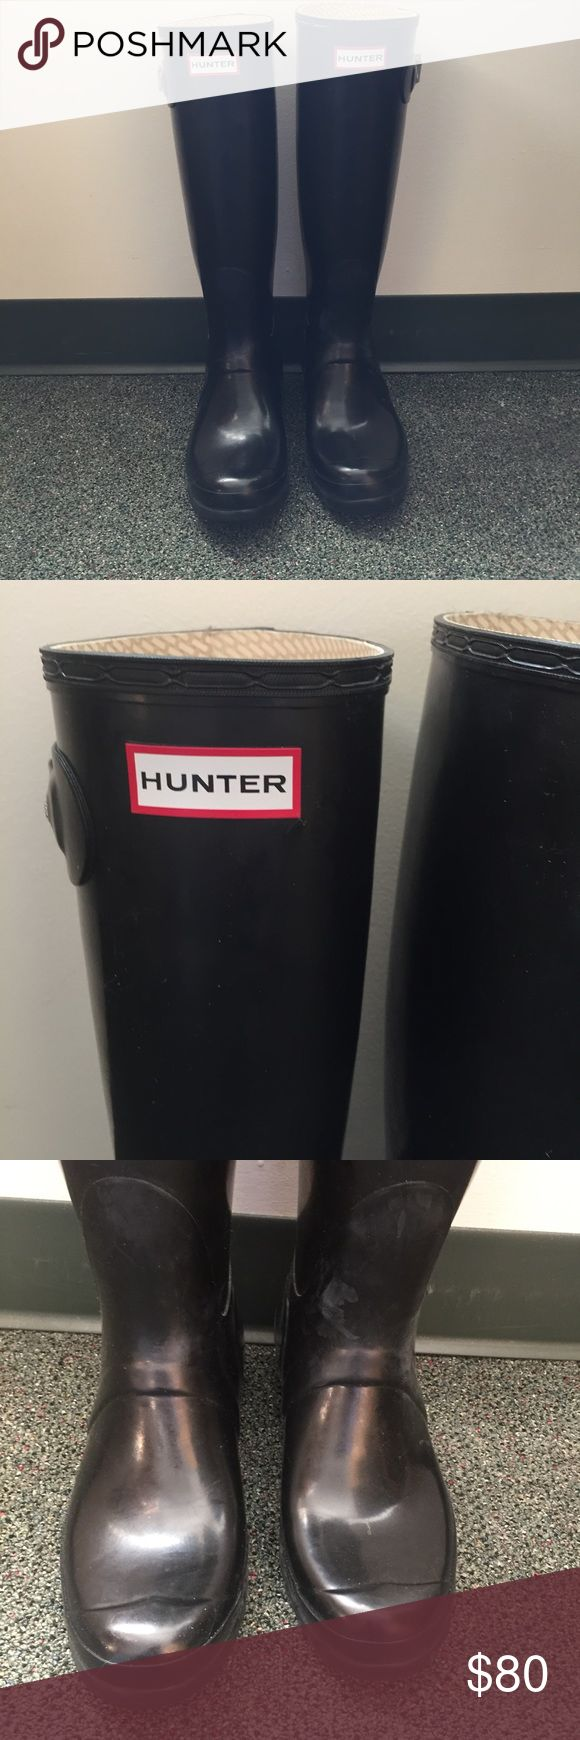 Black Glossy Hunter Rain Boots Hunter rain boots. Glossy black. Could use a cleaning, but other than that in great condition! Feel free to ask any additional questions.   💕 please make offers through offer button 💰 bundle for a 20% off discount  🚬🐶 smoke & pet free home  🚫 sorry no trades Hunter Boots Shoes Winter & Rain Boots